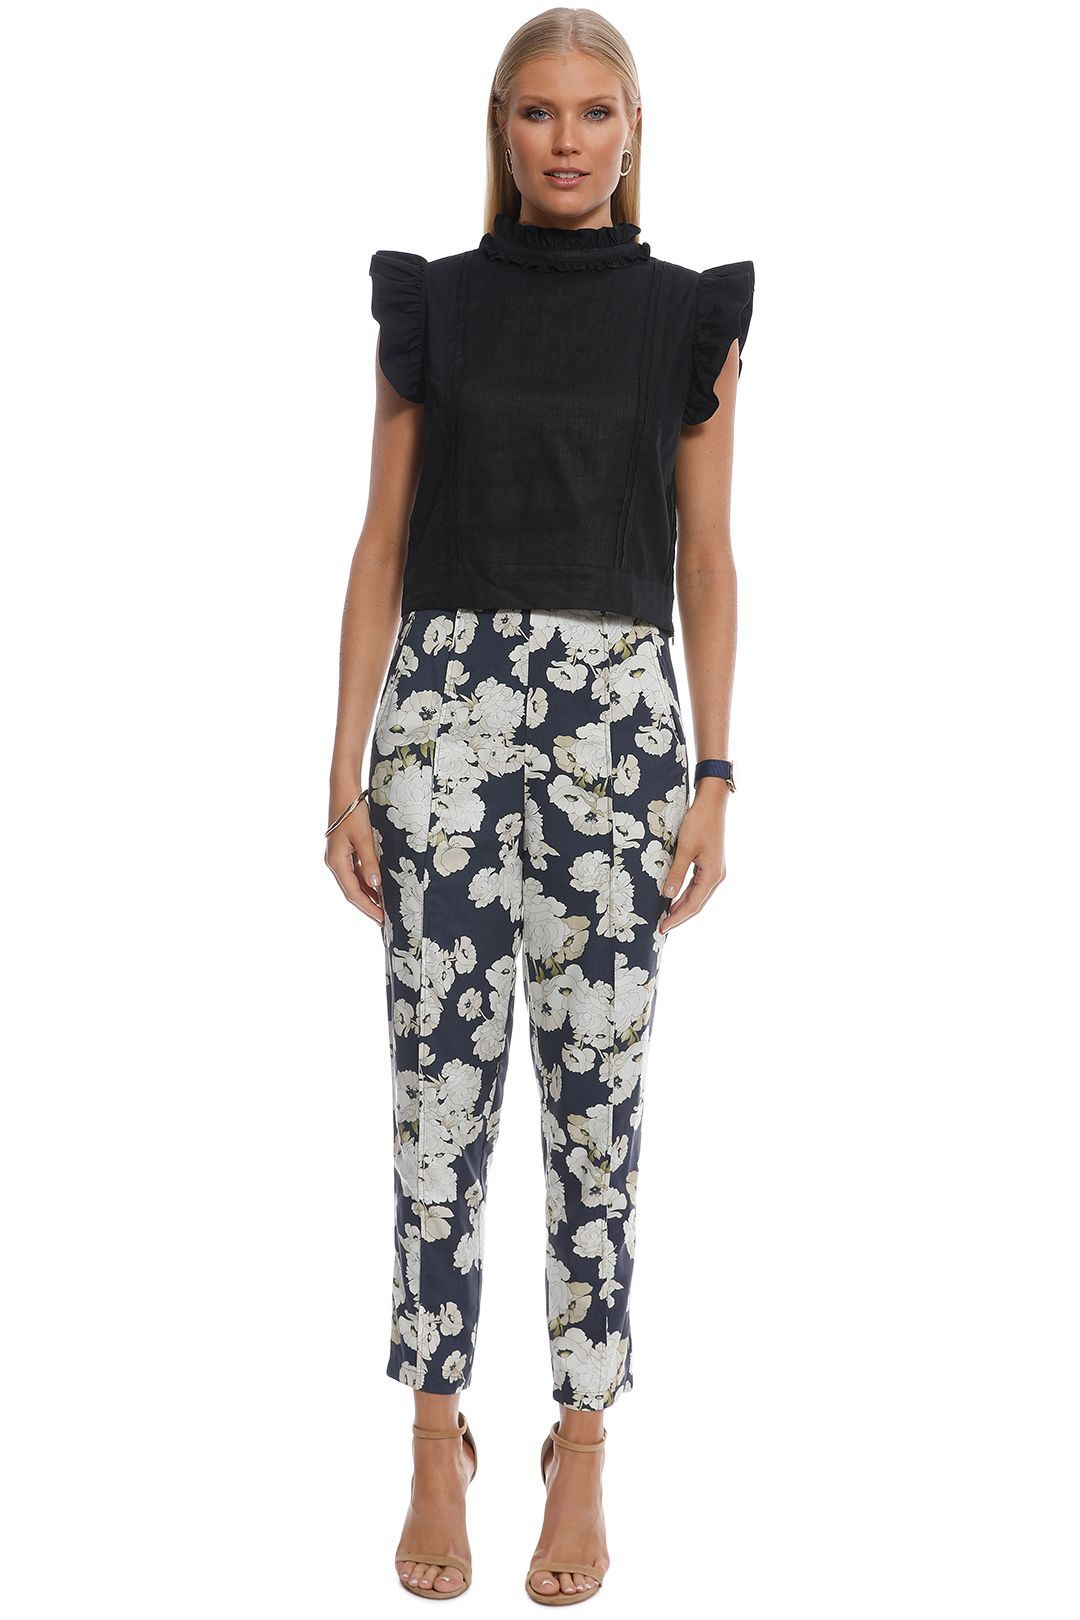 SIR the Label - Bellagio Panelled Pant - Multi - Front